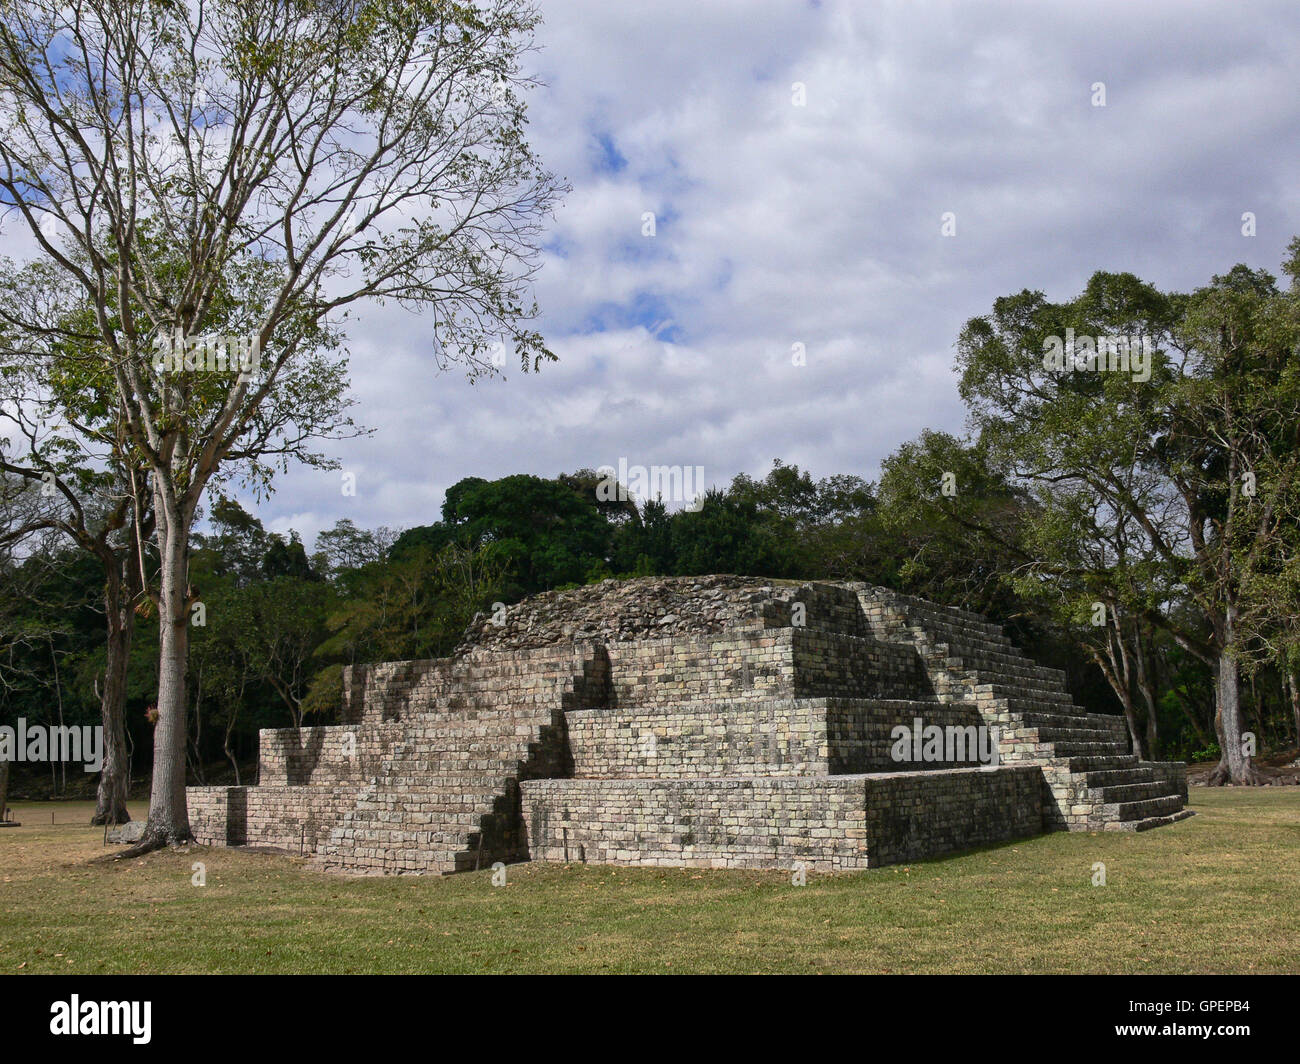 COPAN RUINAS MAYA/HONDURAS - CIRCA MARCH 2012: View of the main Maya pyramid at the archaeological site of Copan - Stock Image